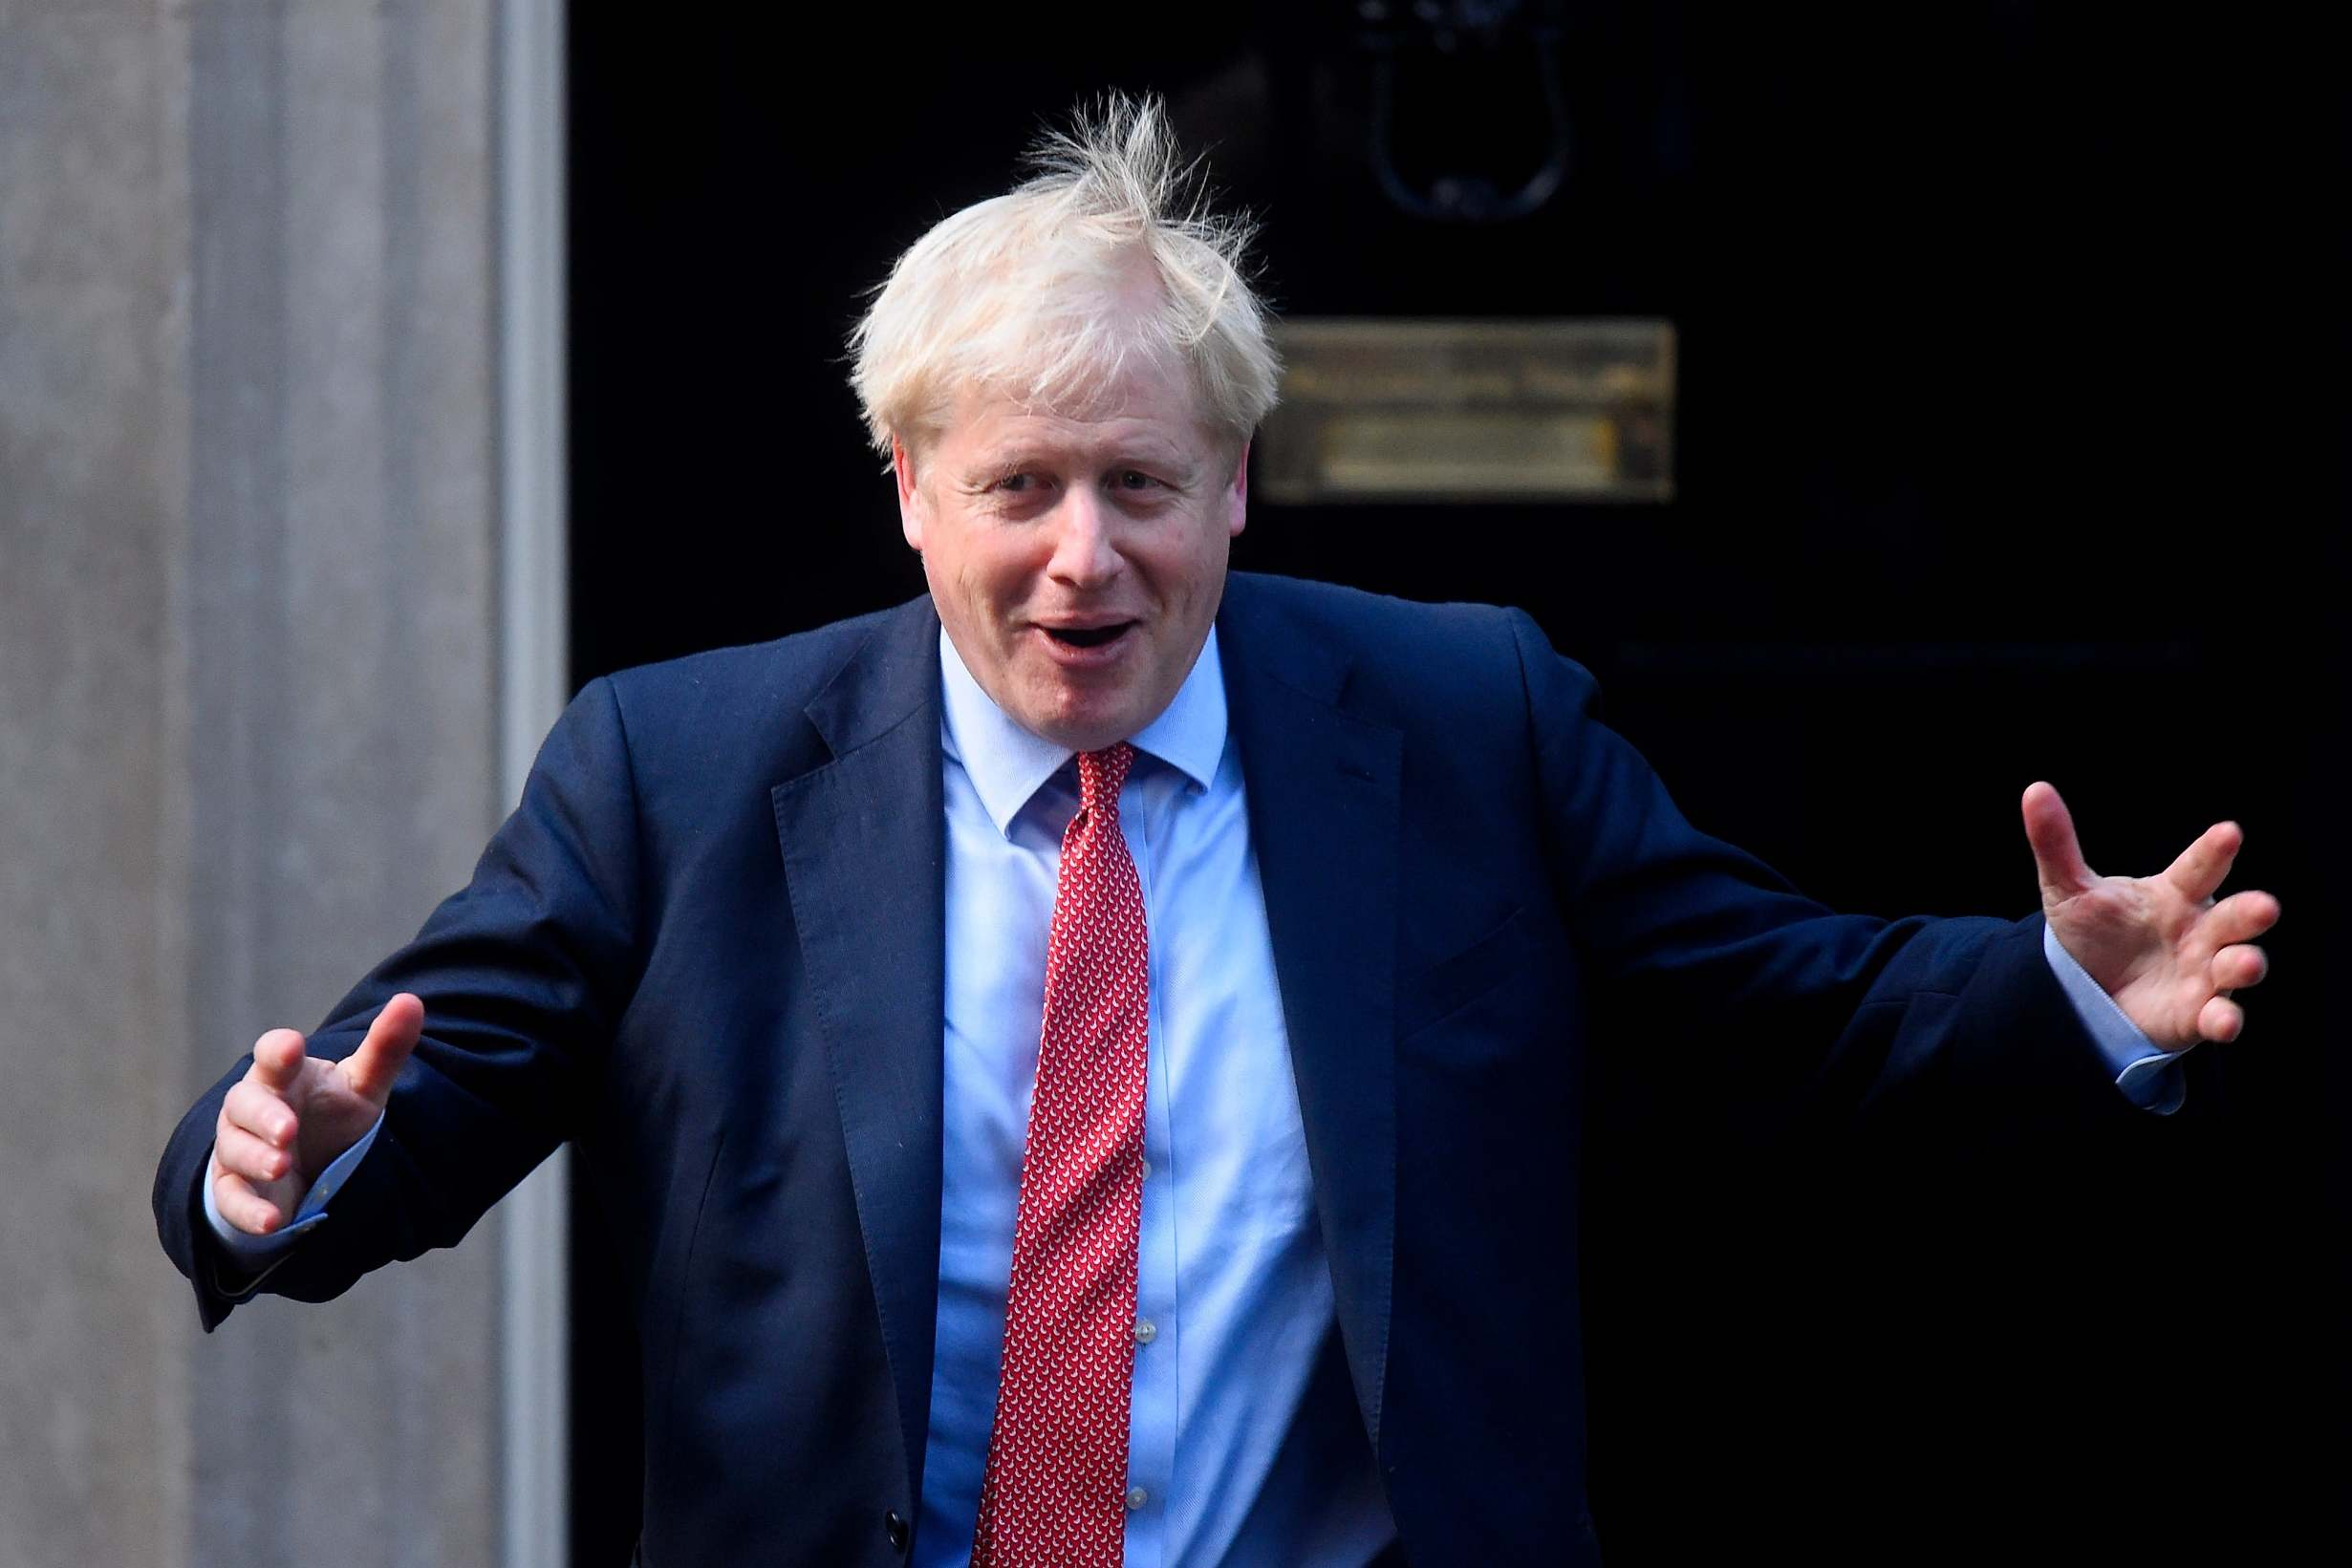 Boris Johnson news - live: PM suffers fresh Brexit humiliation as EU systematically rubbishes plan, amid bizarre scheme to defy Queen